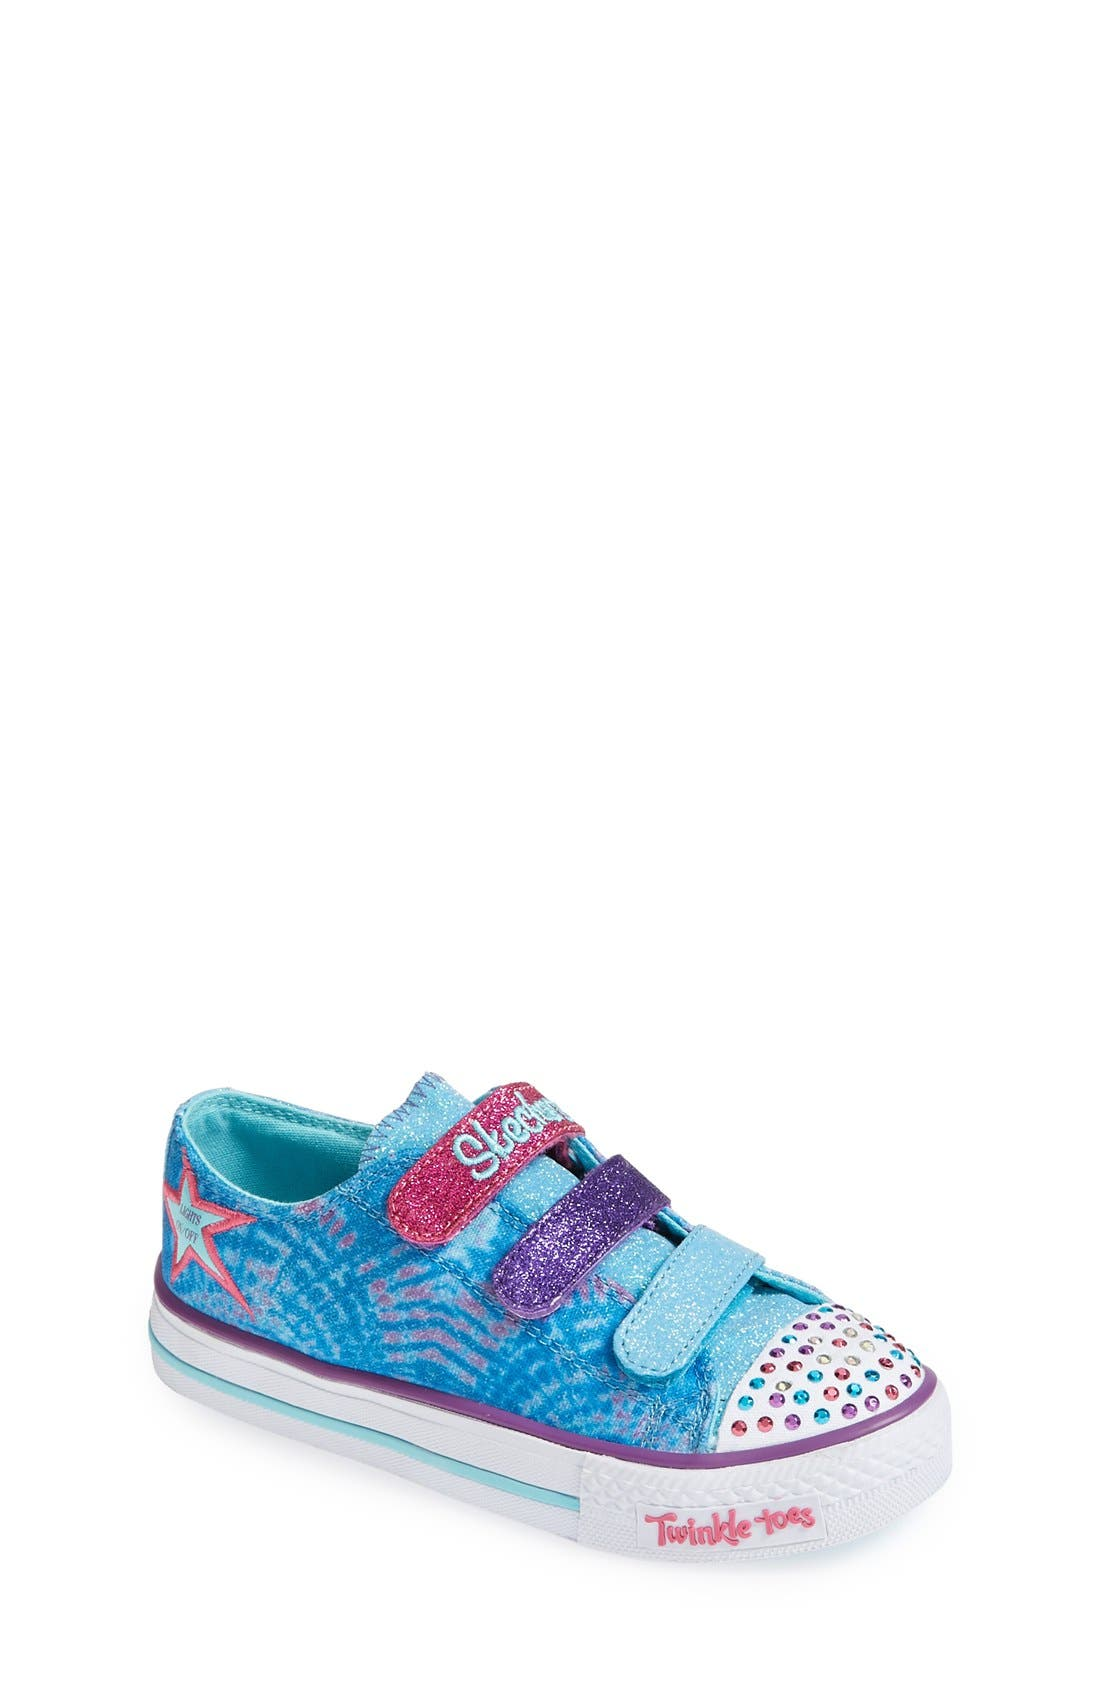 Alternate Image 1 Selected - SKECHERS 'Twinkle Toes' Light-Up Sneaker (Toddler & Little Kid)